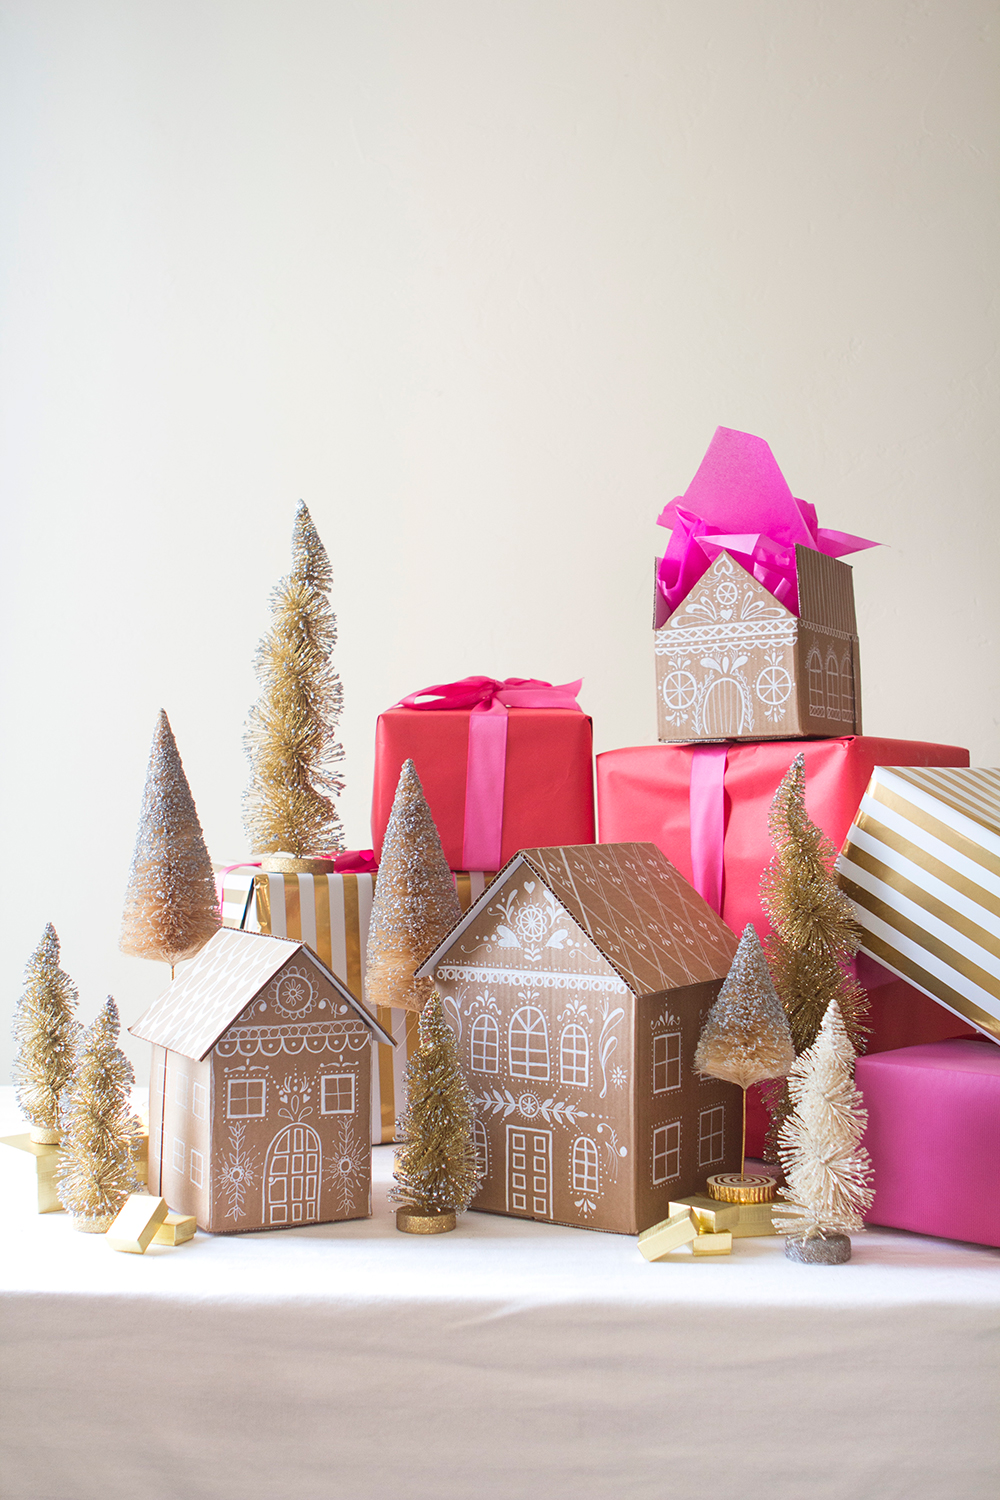 Darling gingerbread gift boxes by The House That Lars Built. #gingerbreadhouses #giftboxes #diy #holidaycrafts